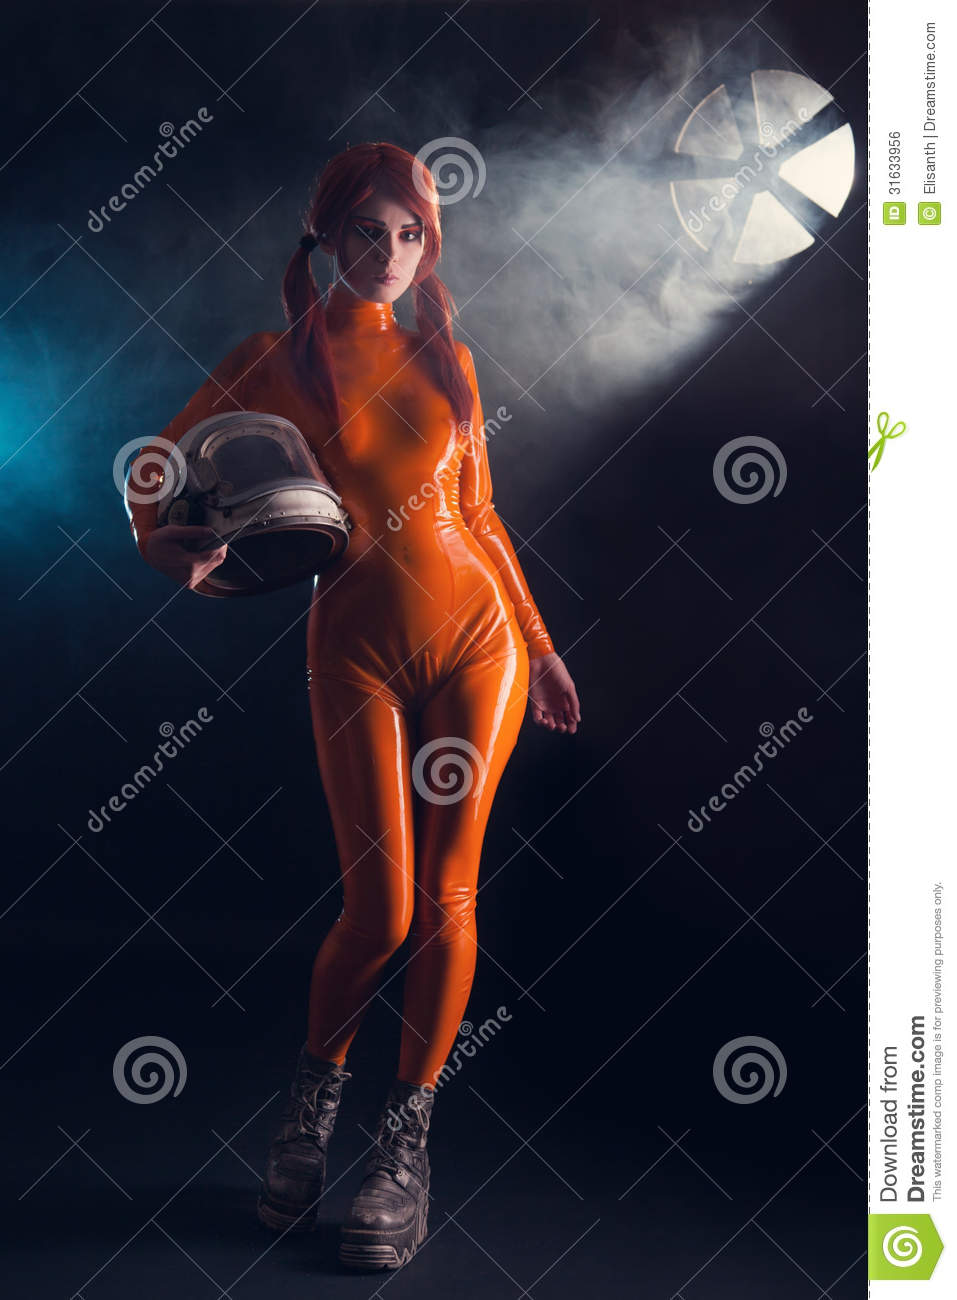 girl in latex catsuit, sci-fi theme